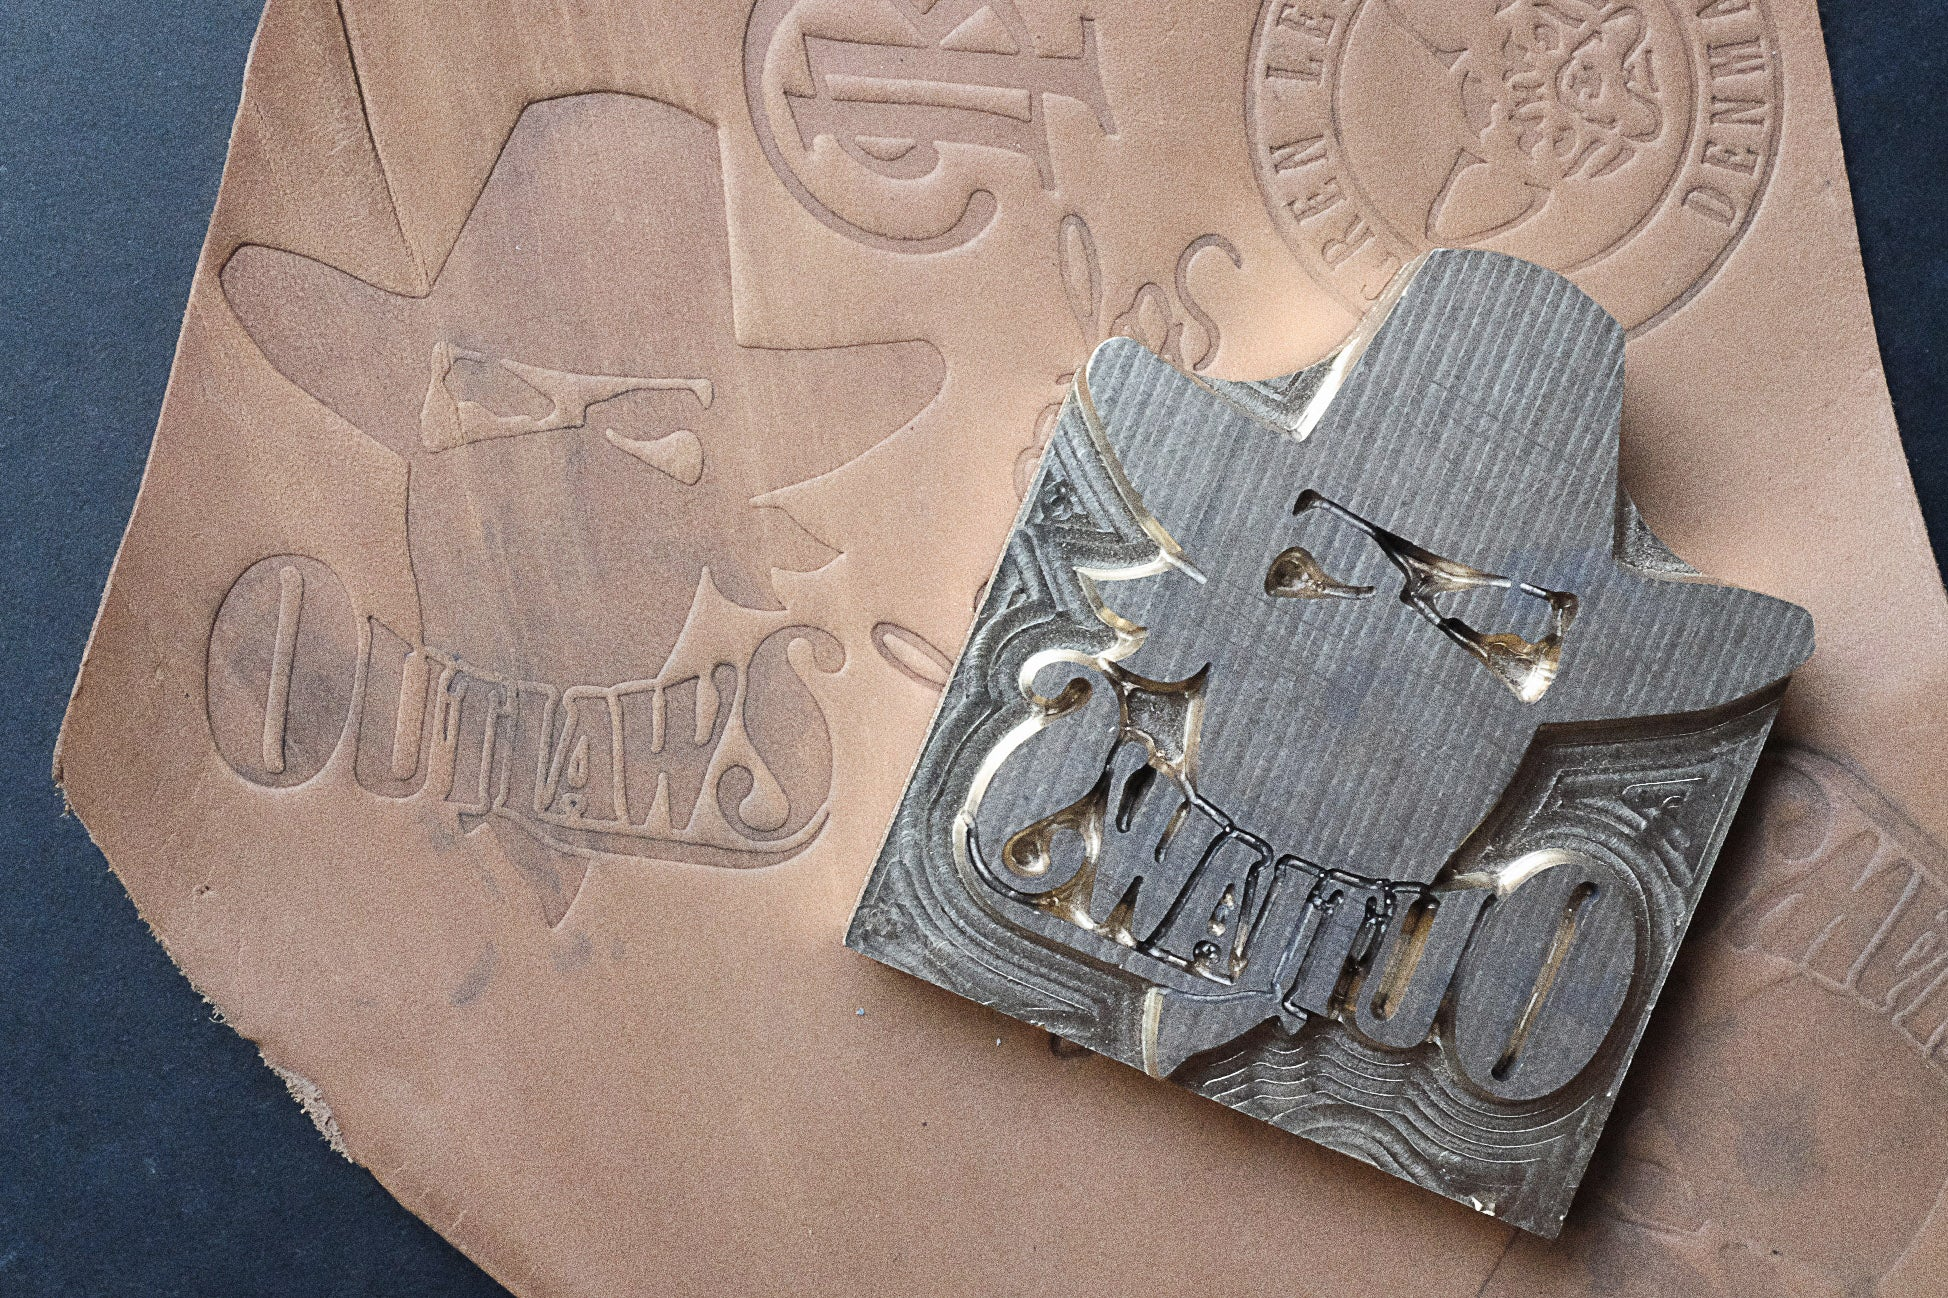 Get your custom-made stamp made by Am-leathercraft for your leather projects